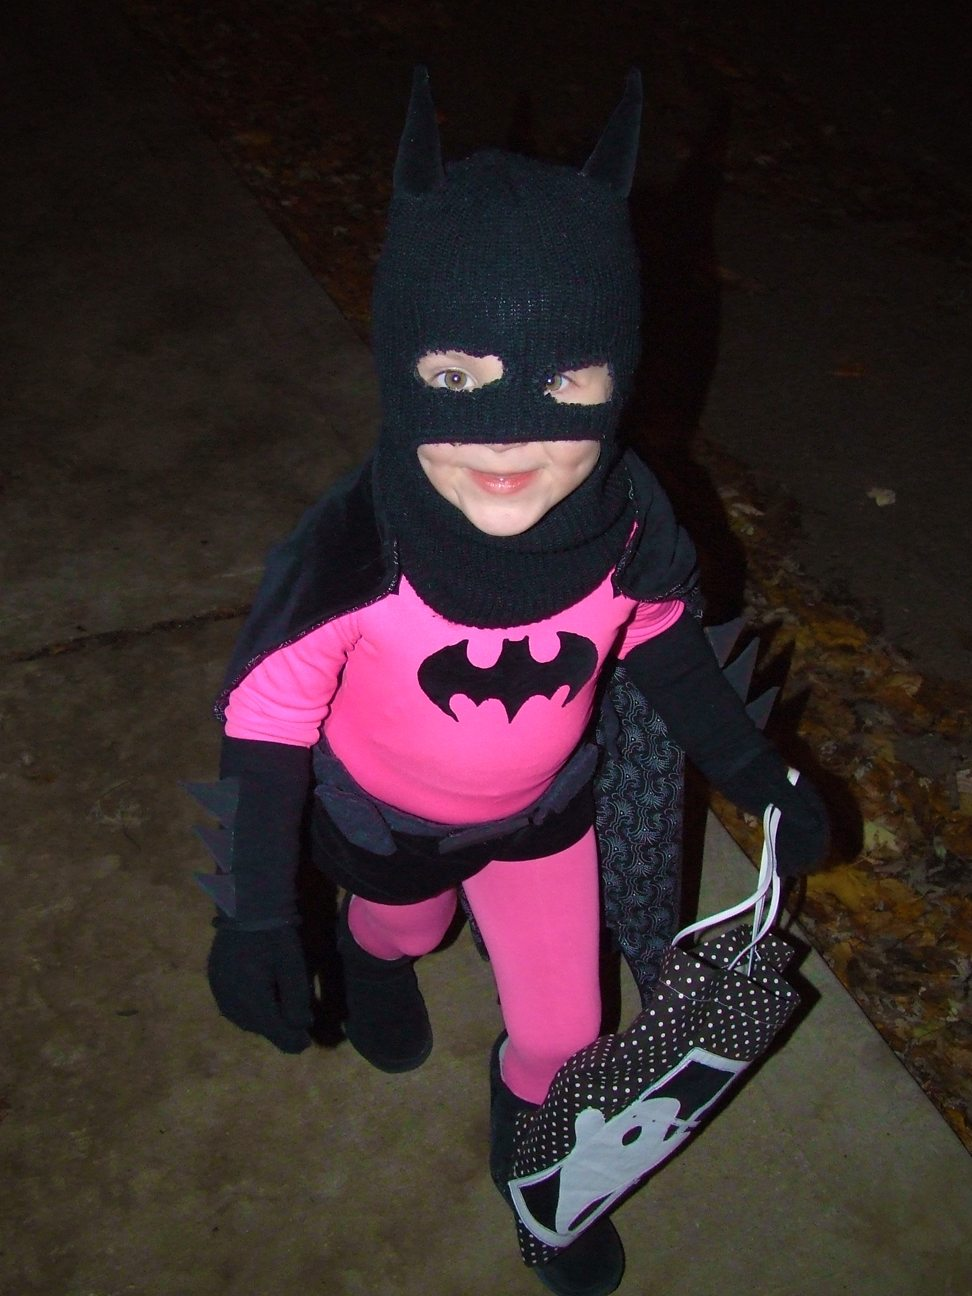 Pink Batman is not afraid of monsters! Photo by Evan Long, used under Creative Commons license.